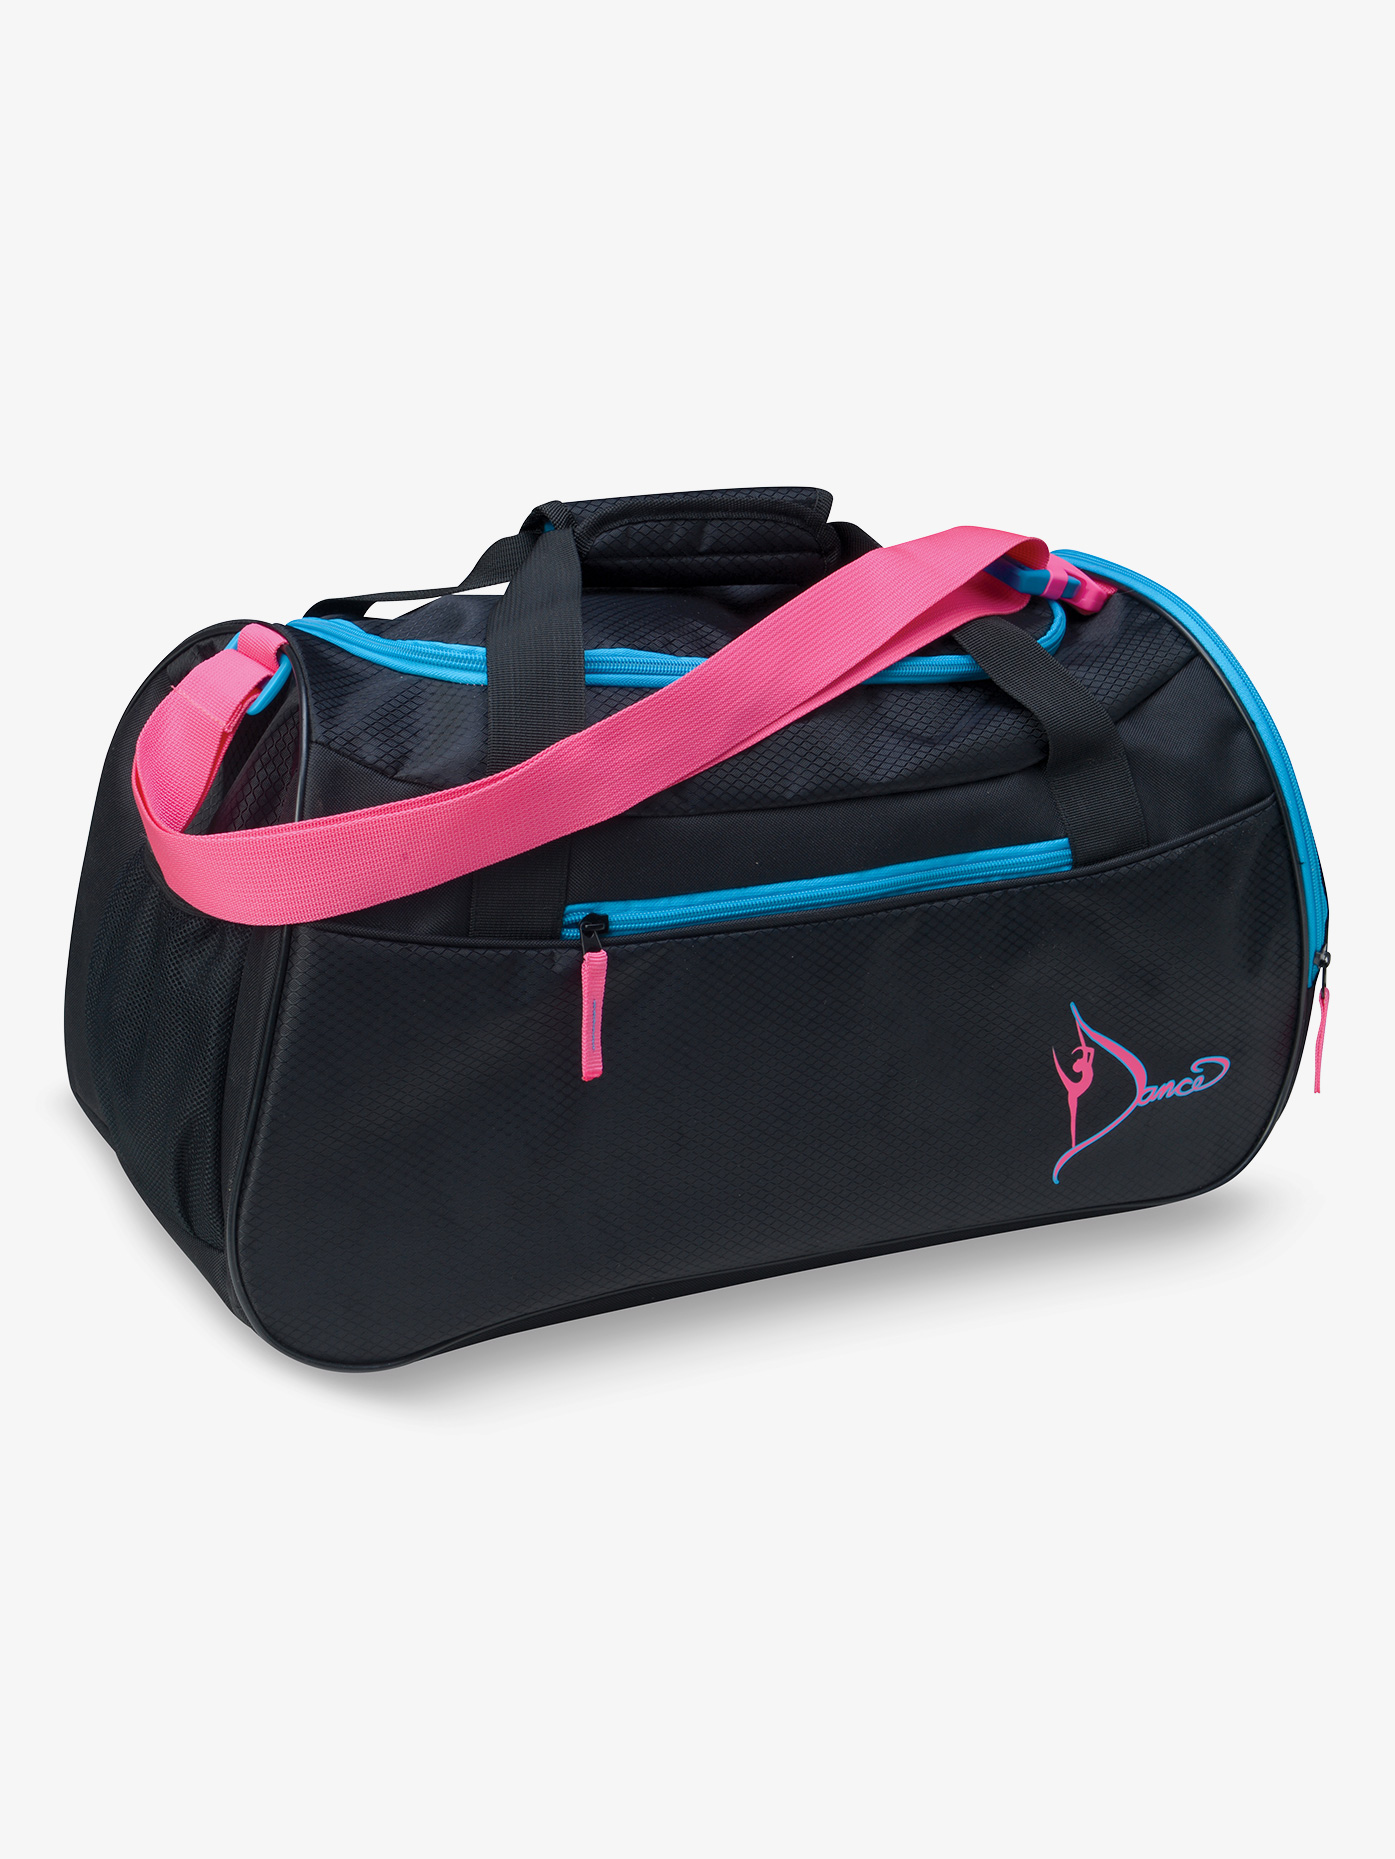 DansBagz Neon Dancer's Gear Bag B591